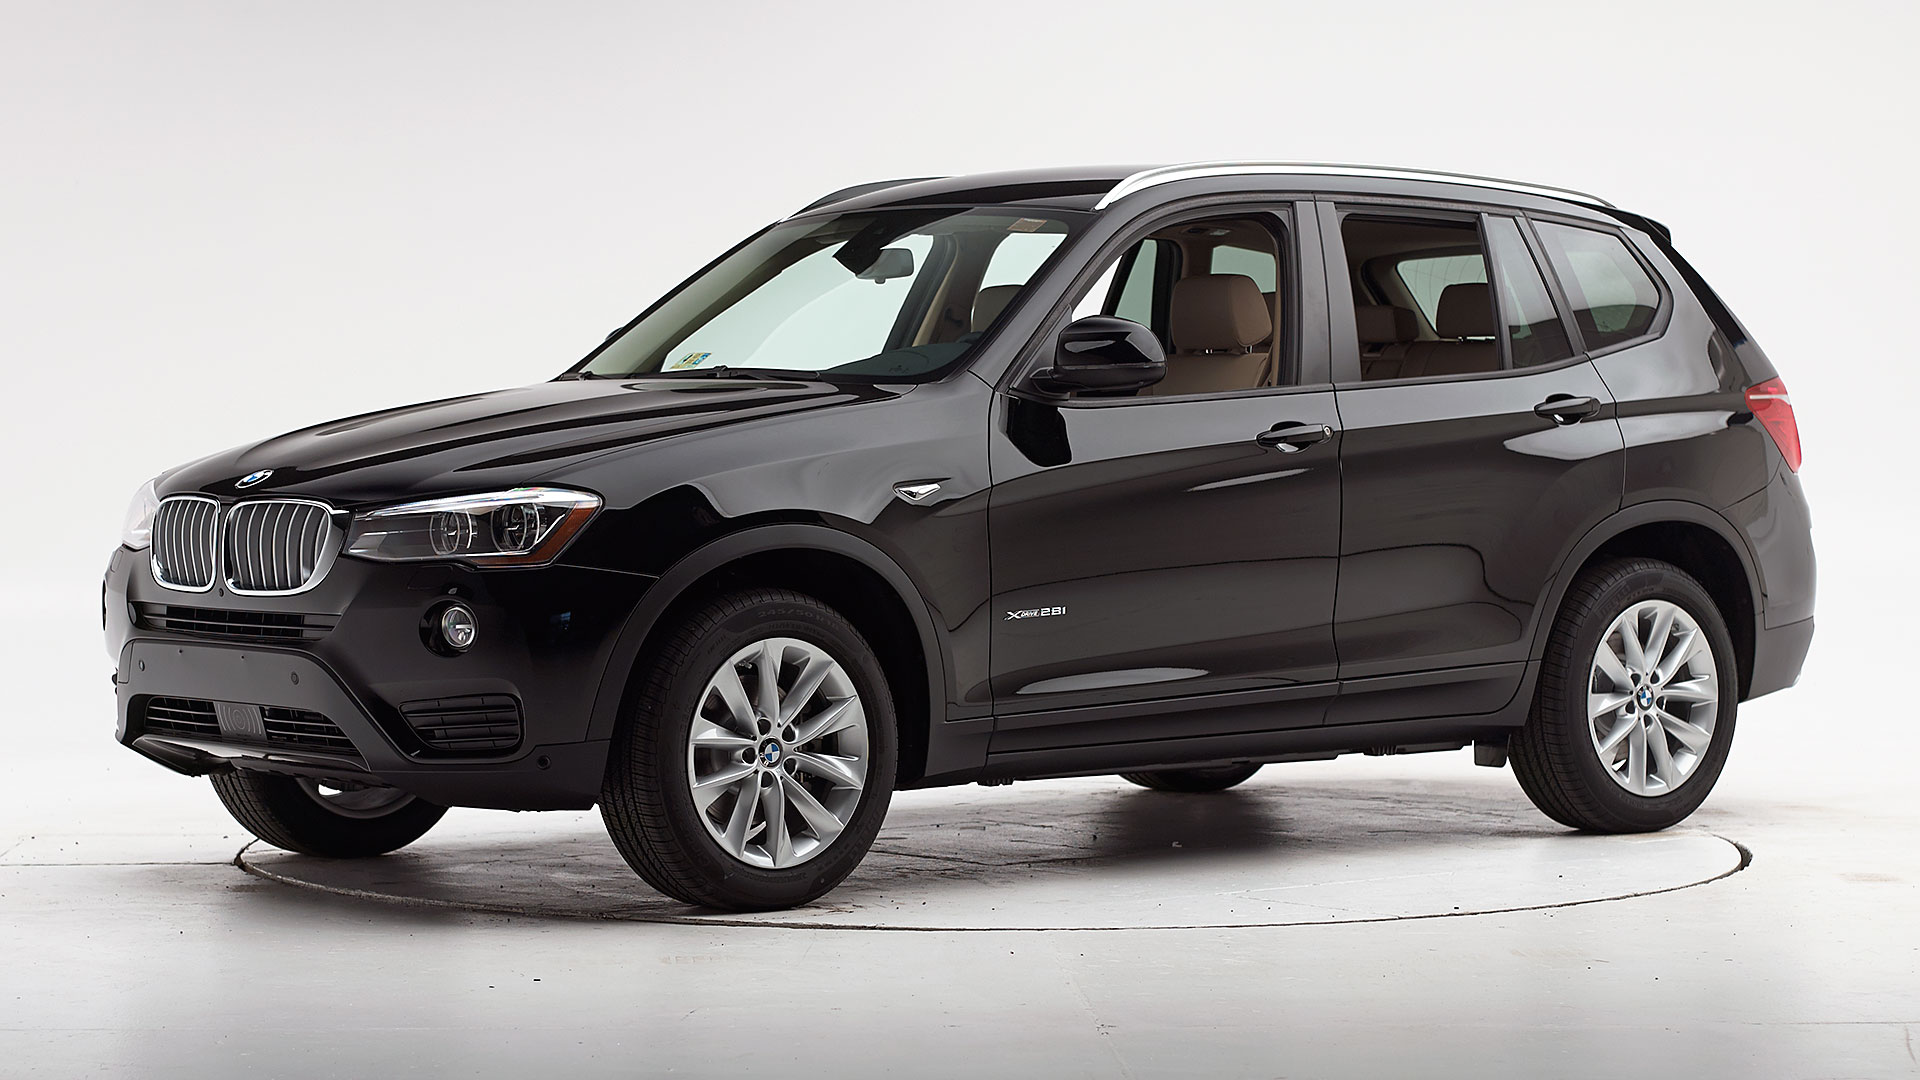 2016 BMW X3 4-door SUV